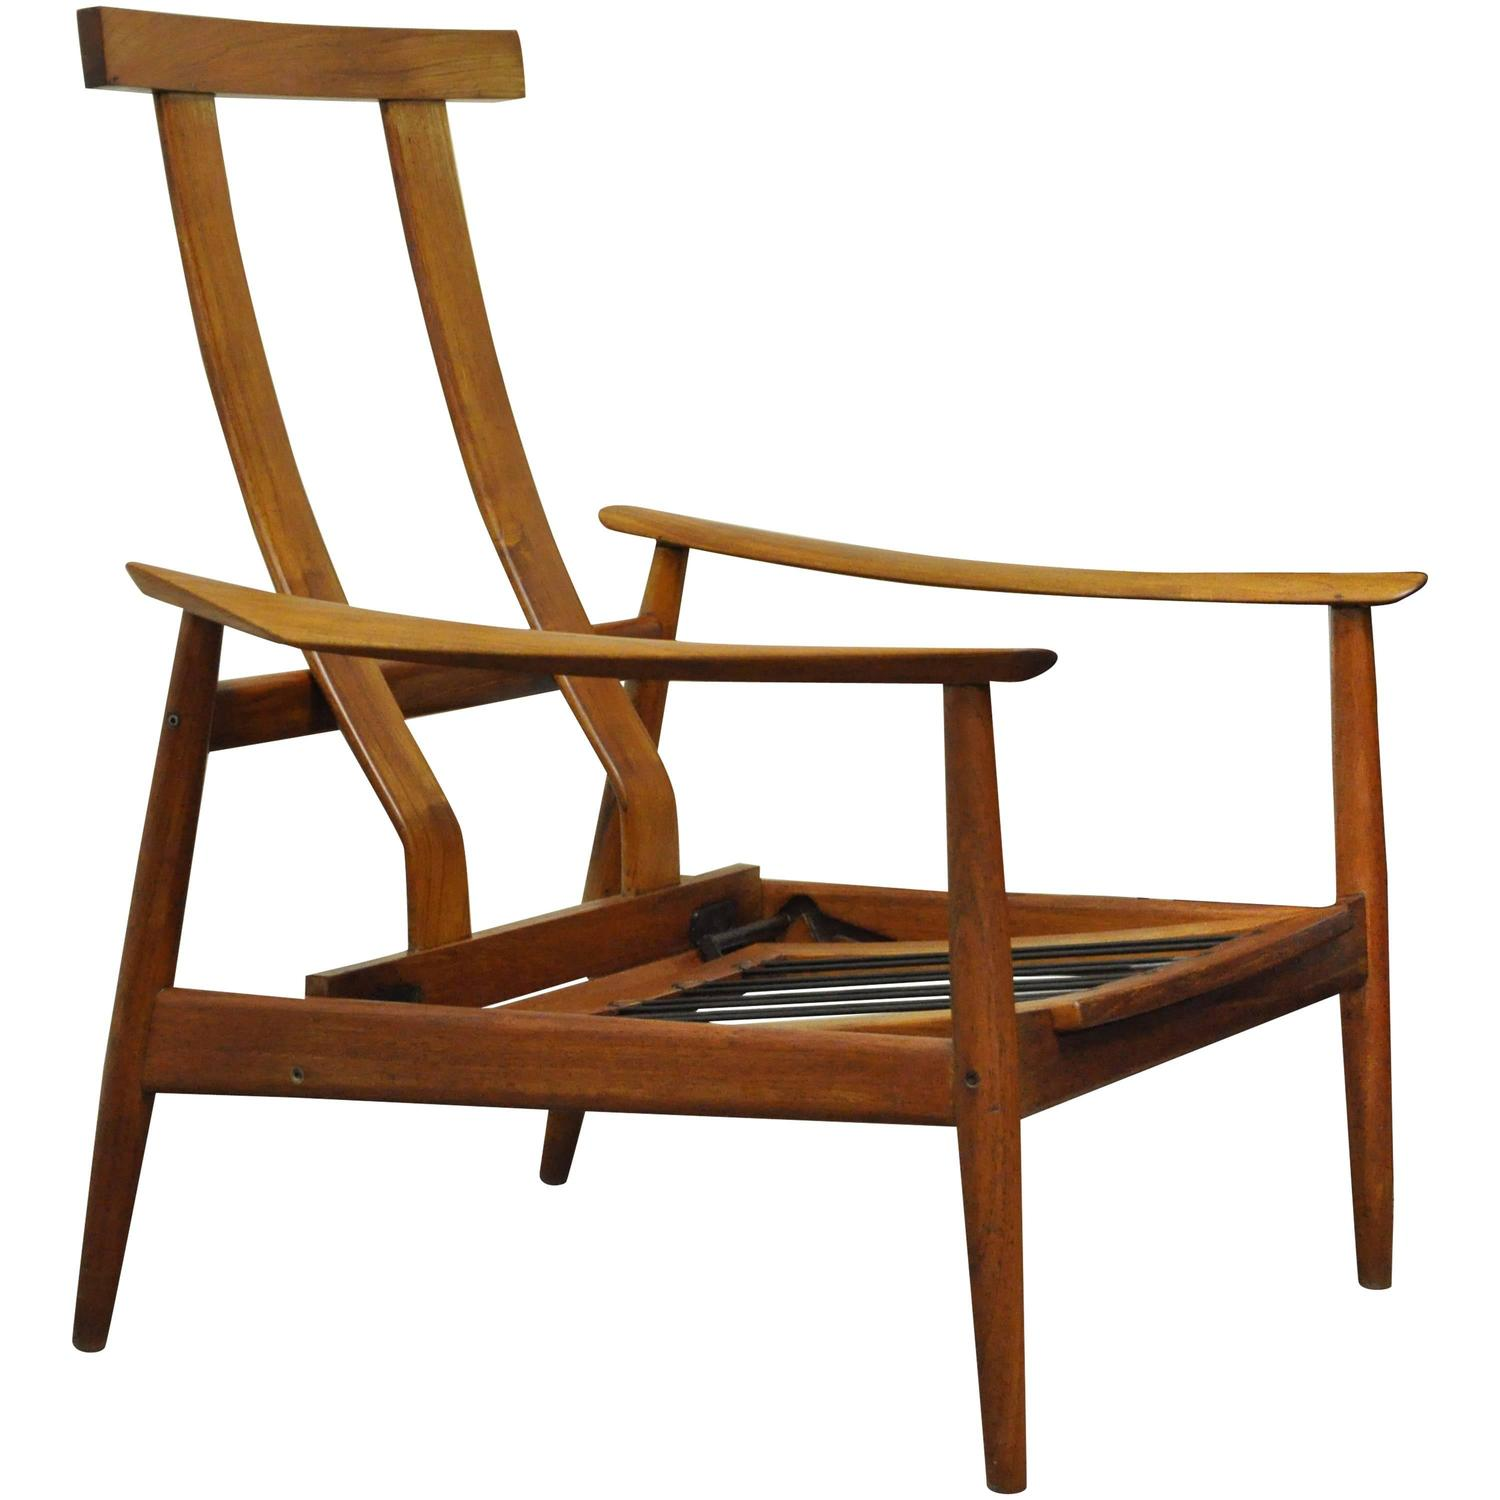 Arne Vodder Sessel Arne Vodder Lounge Chairs 26 For Sale At 1stdibs